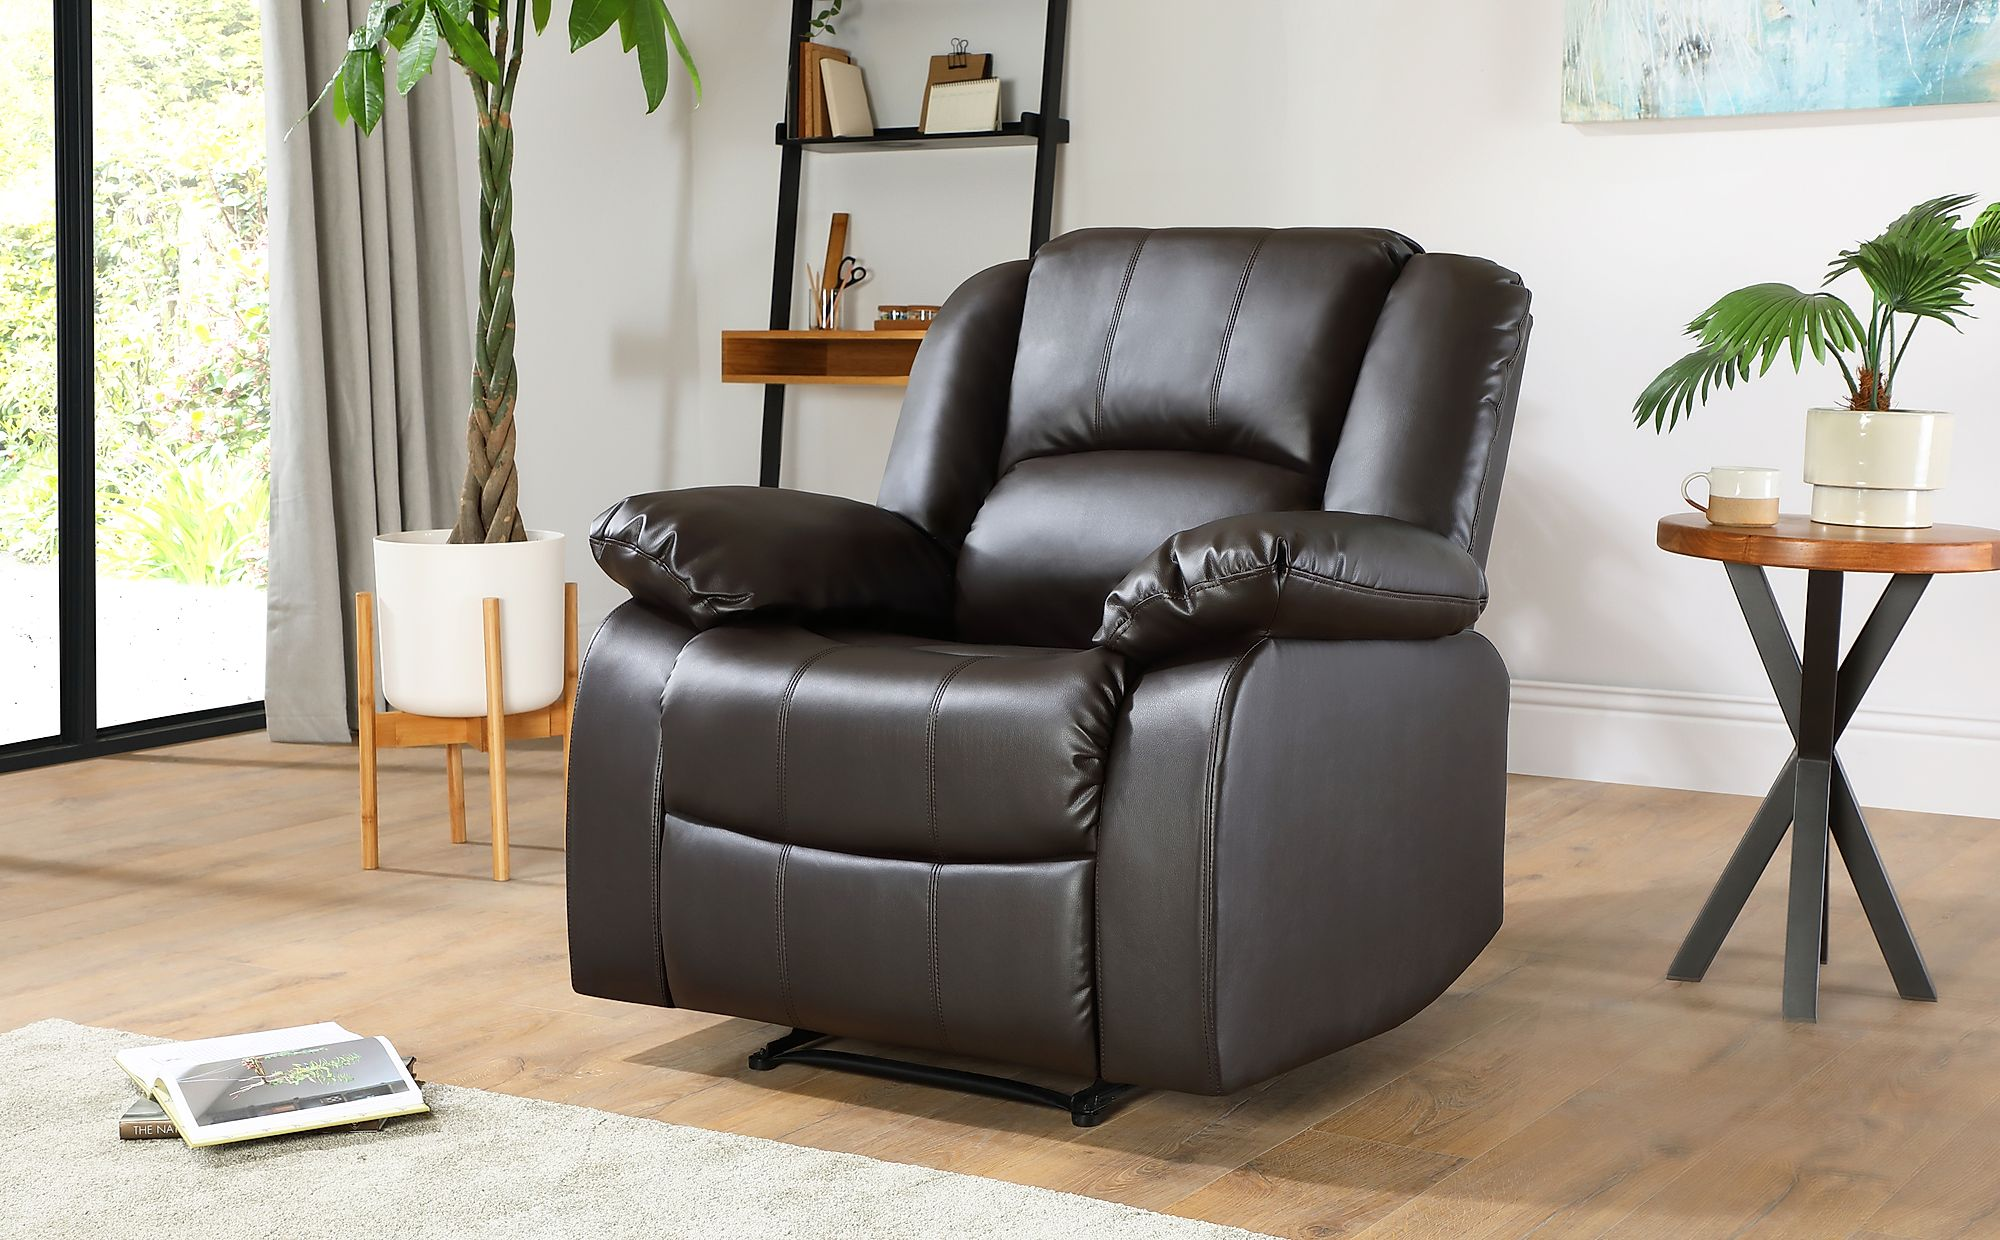 Dakota Brown Leather Recliner Armchair | Furniture Choice